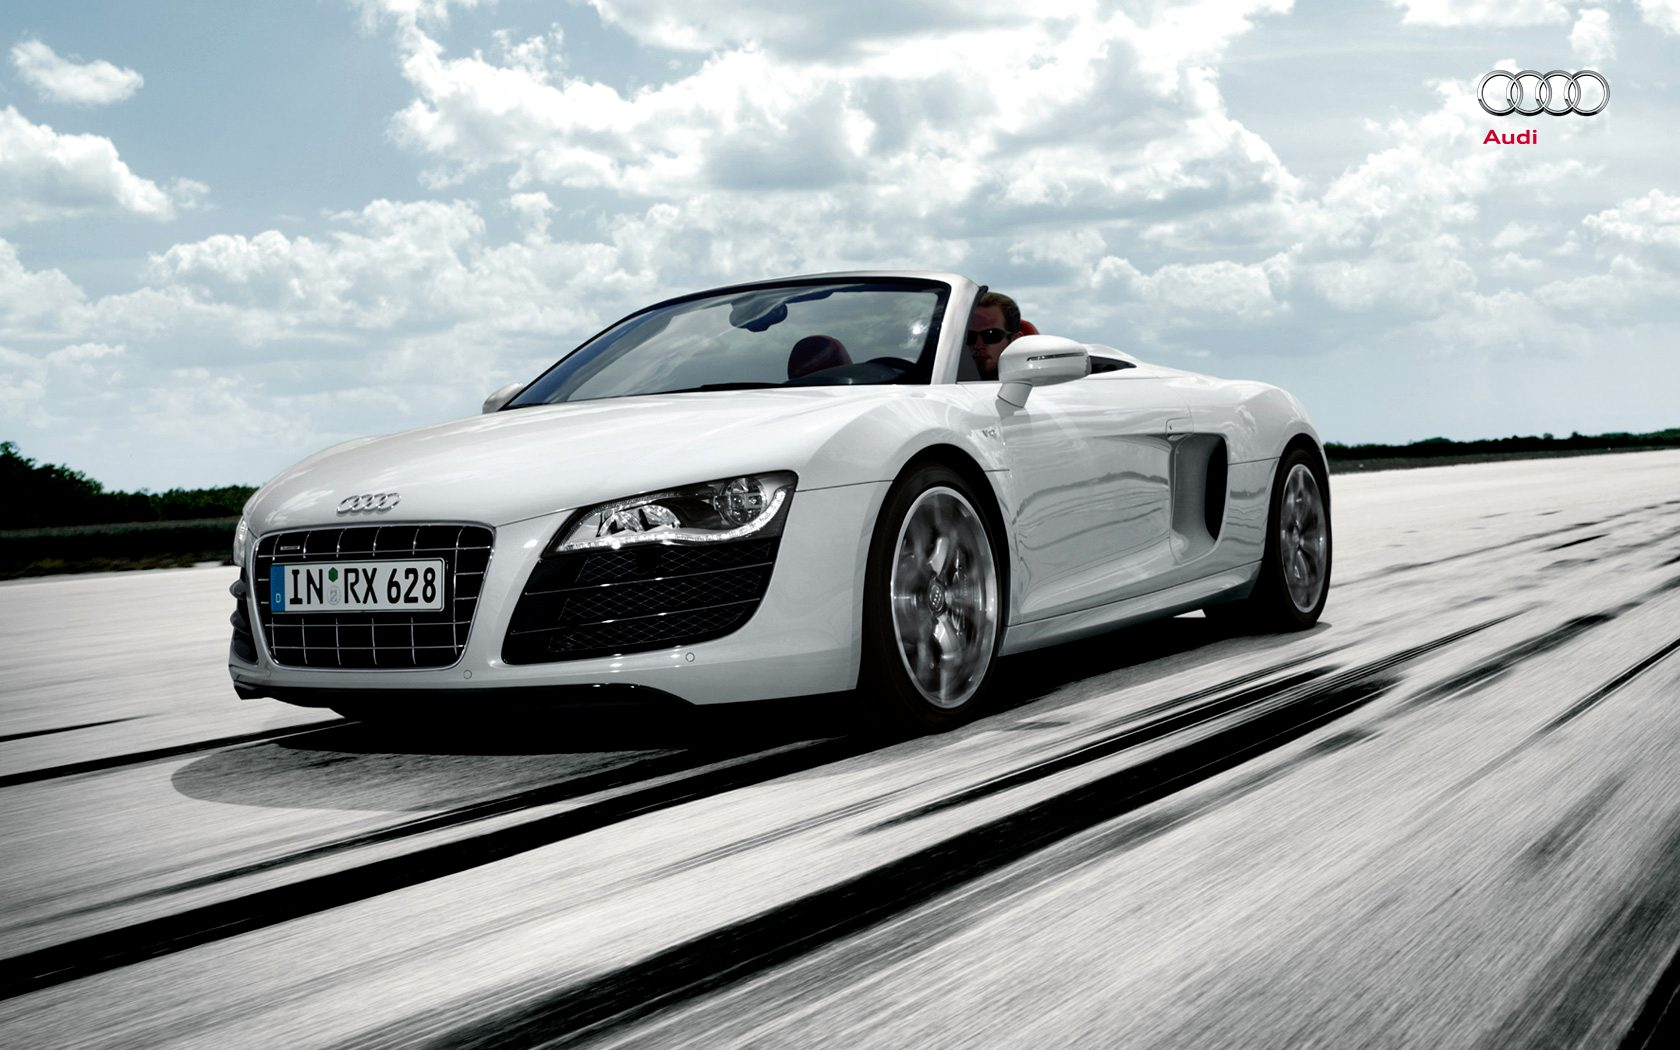 Audi R8 Spyder Wallpaper Best Wallpapers HD Gallery 1680x1050